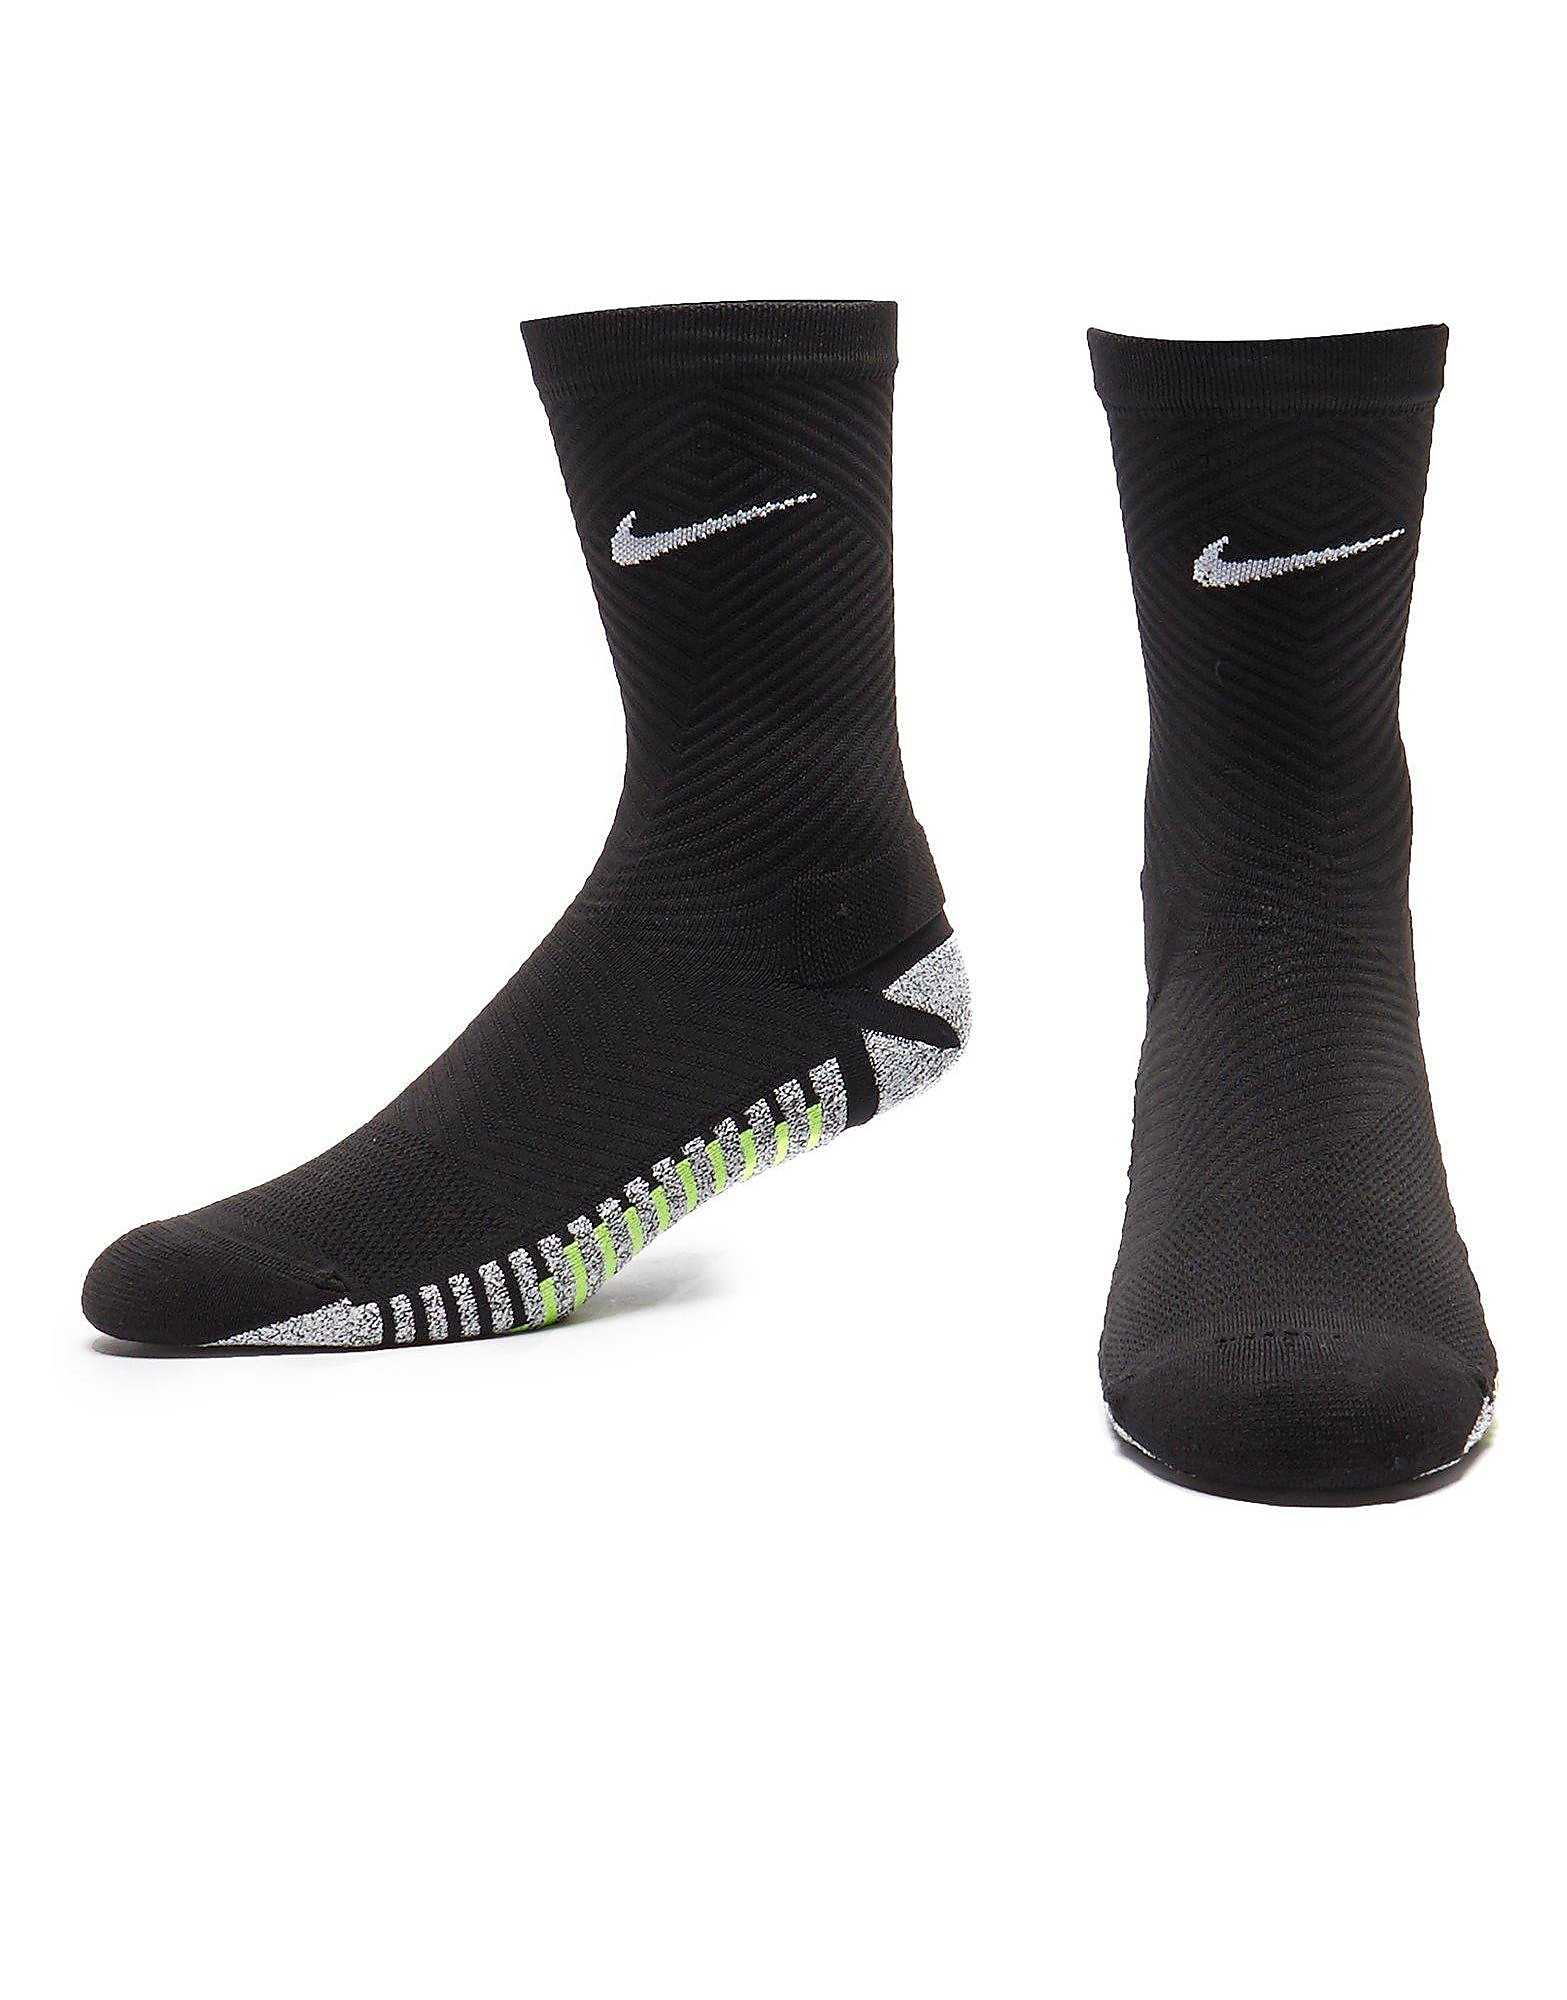 Nike Grip Strike Crew Socks